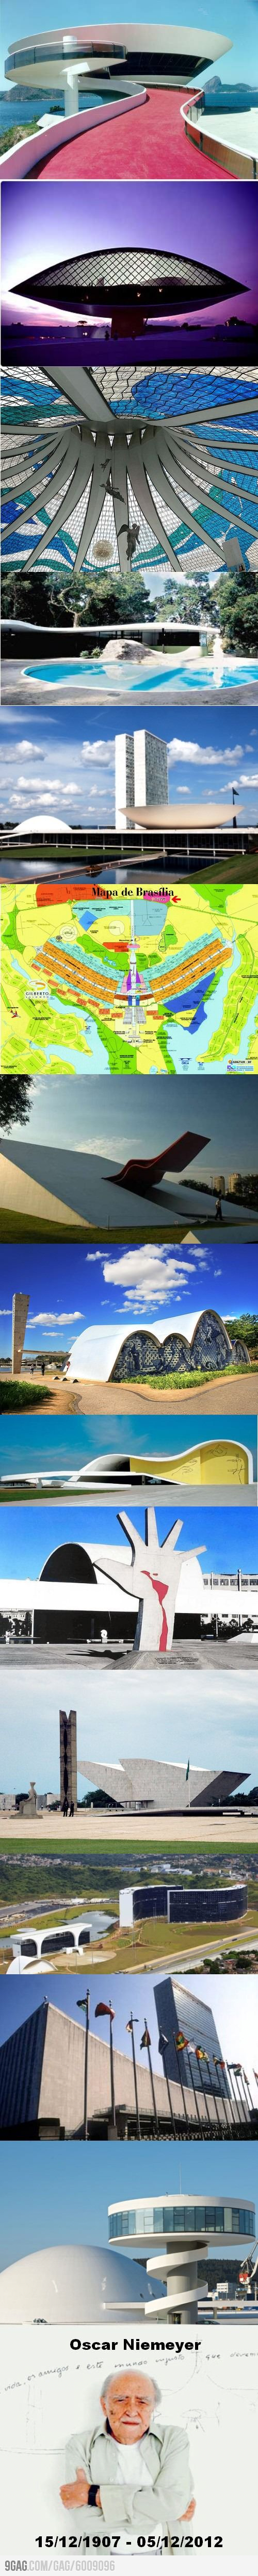 The world lost one of its greatest architects. Oscar Niemeyer.